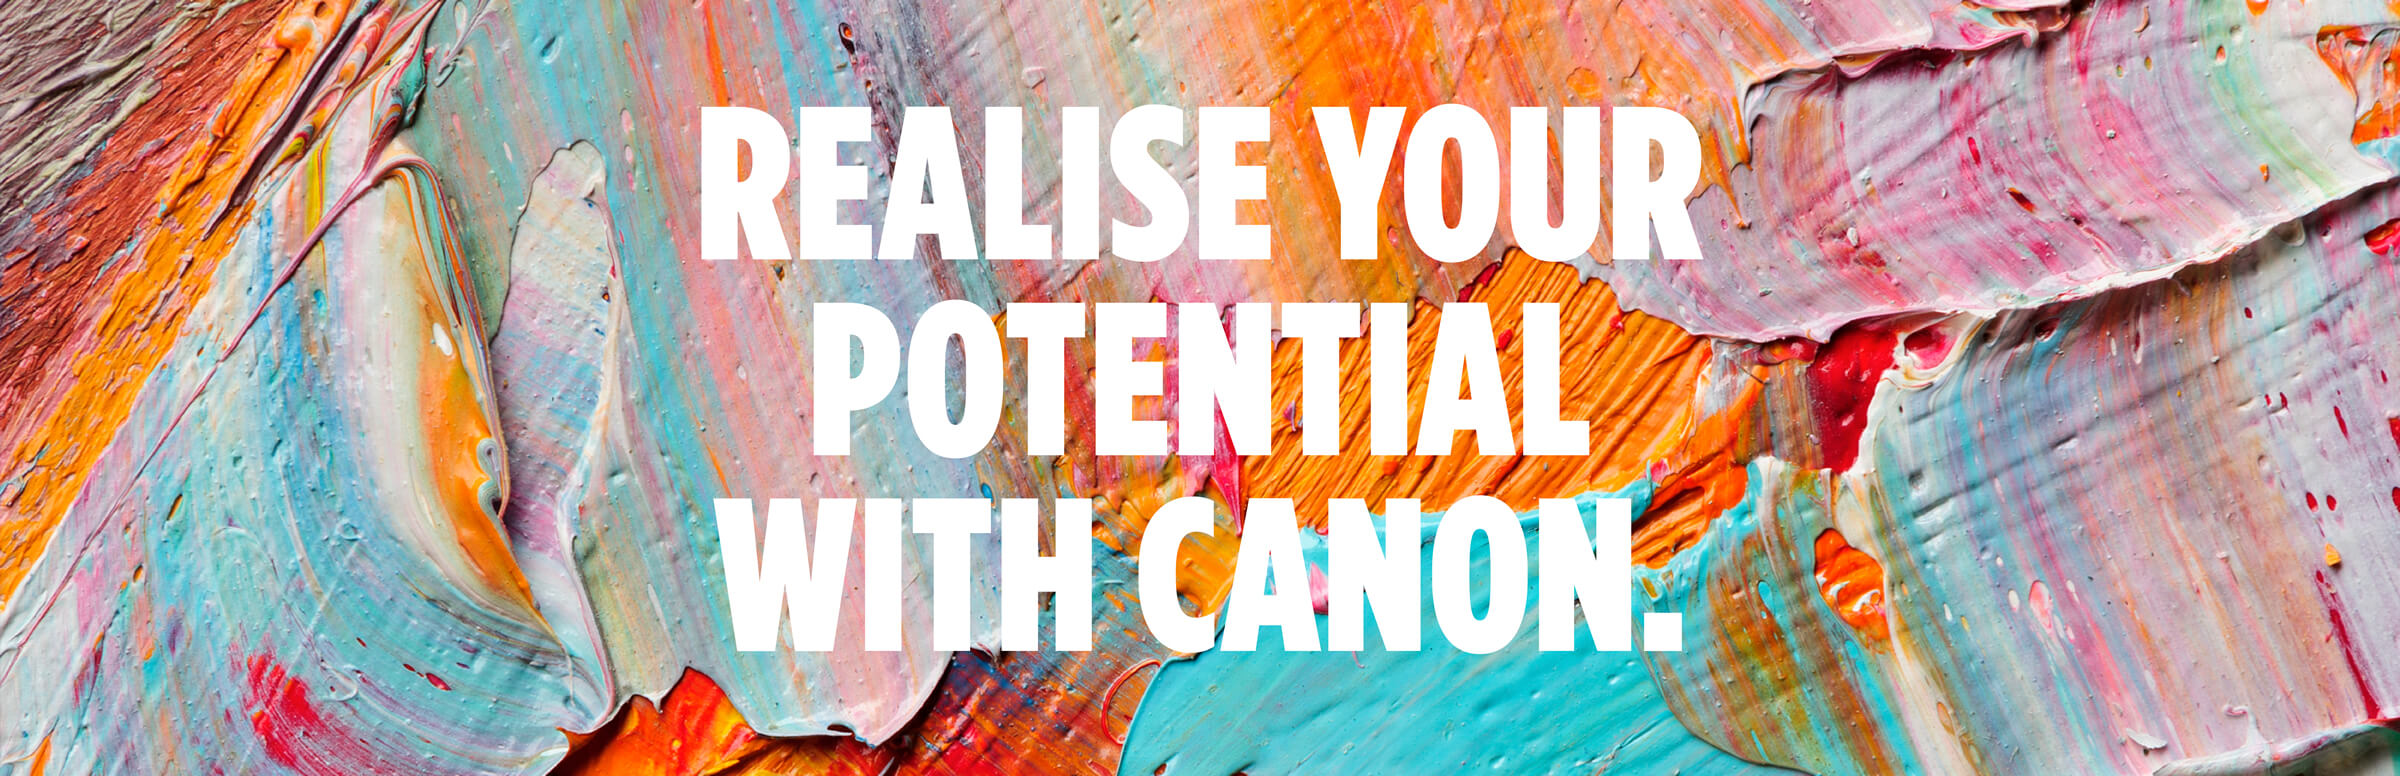 Realise Your Potential With Canon